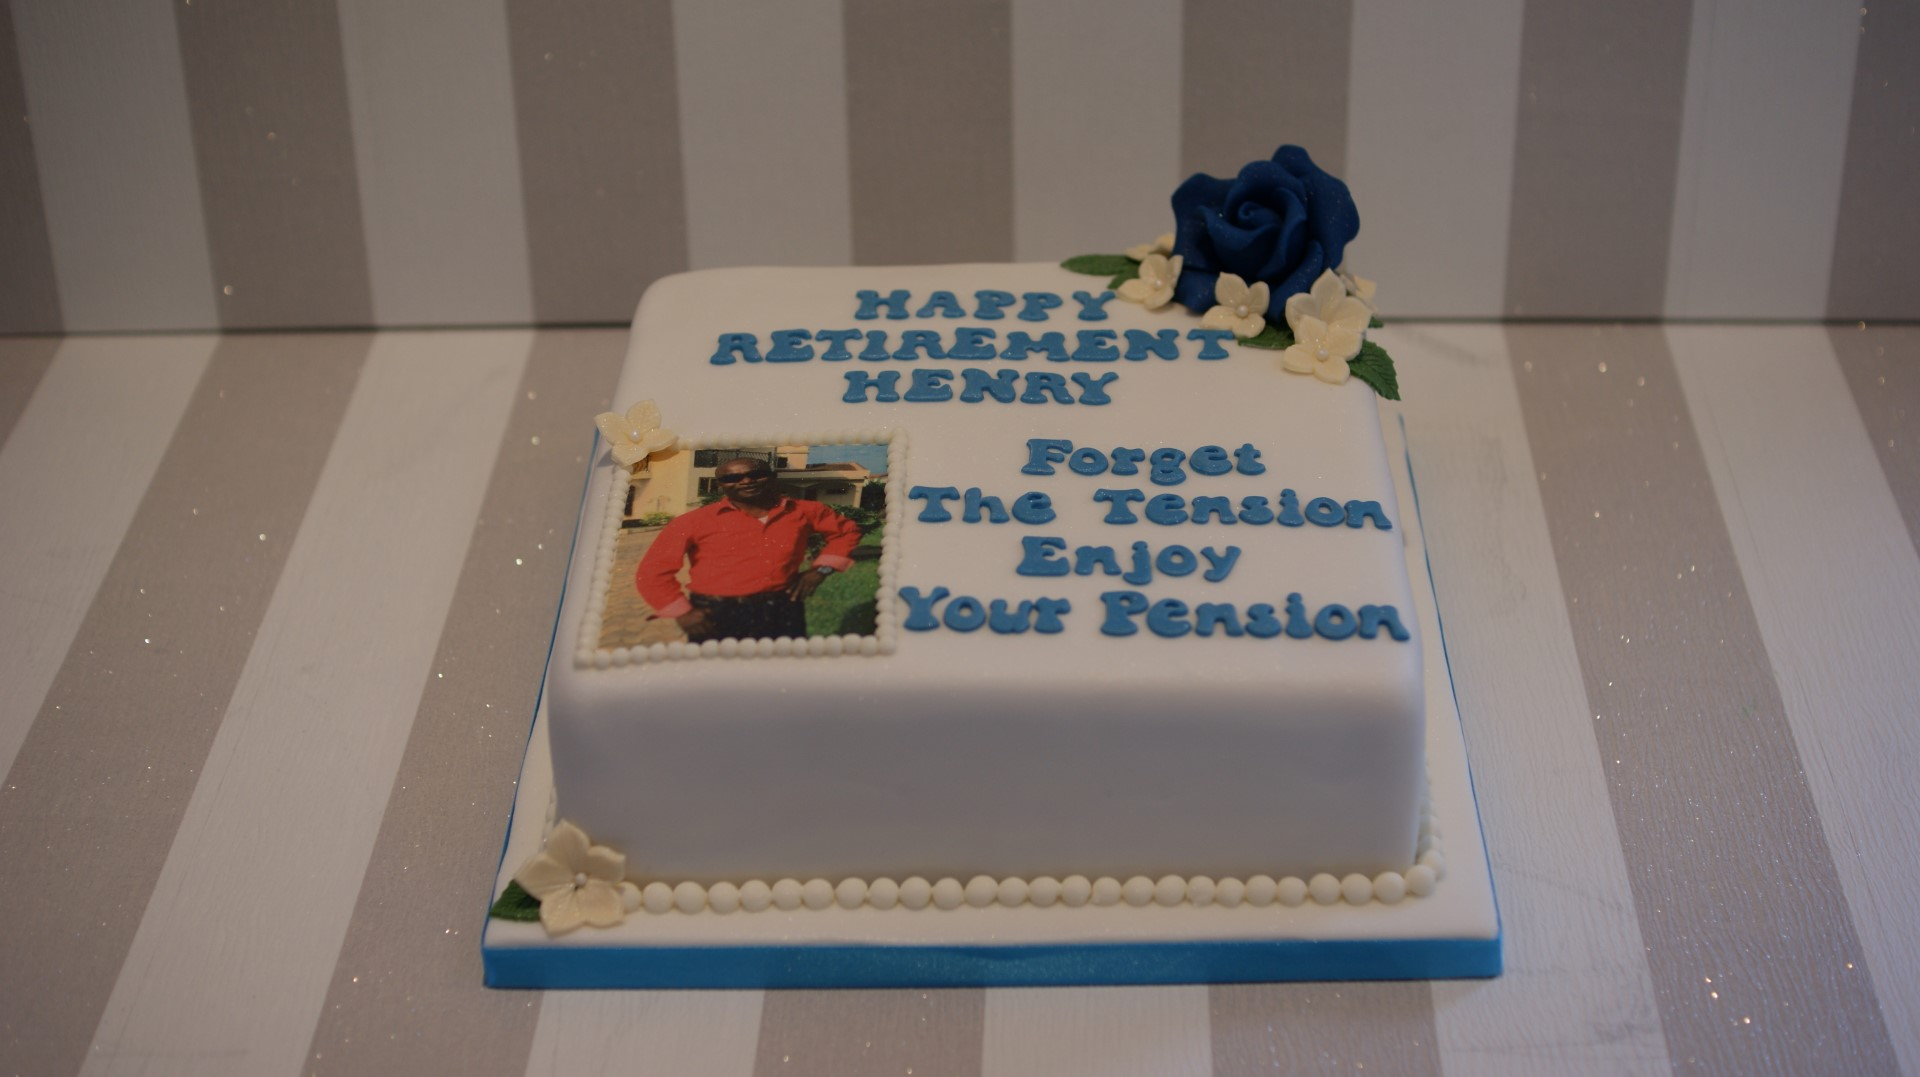 Personalised Birthday Cake With Photograph Forget The Tension Enjoy Your Pension 2